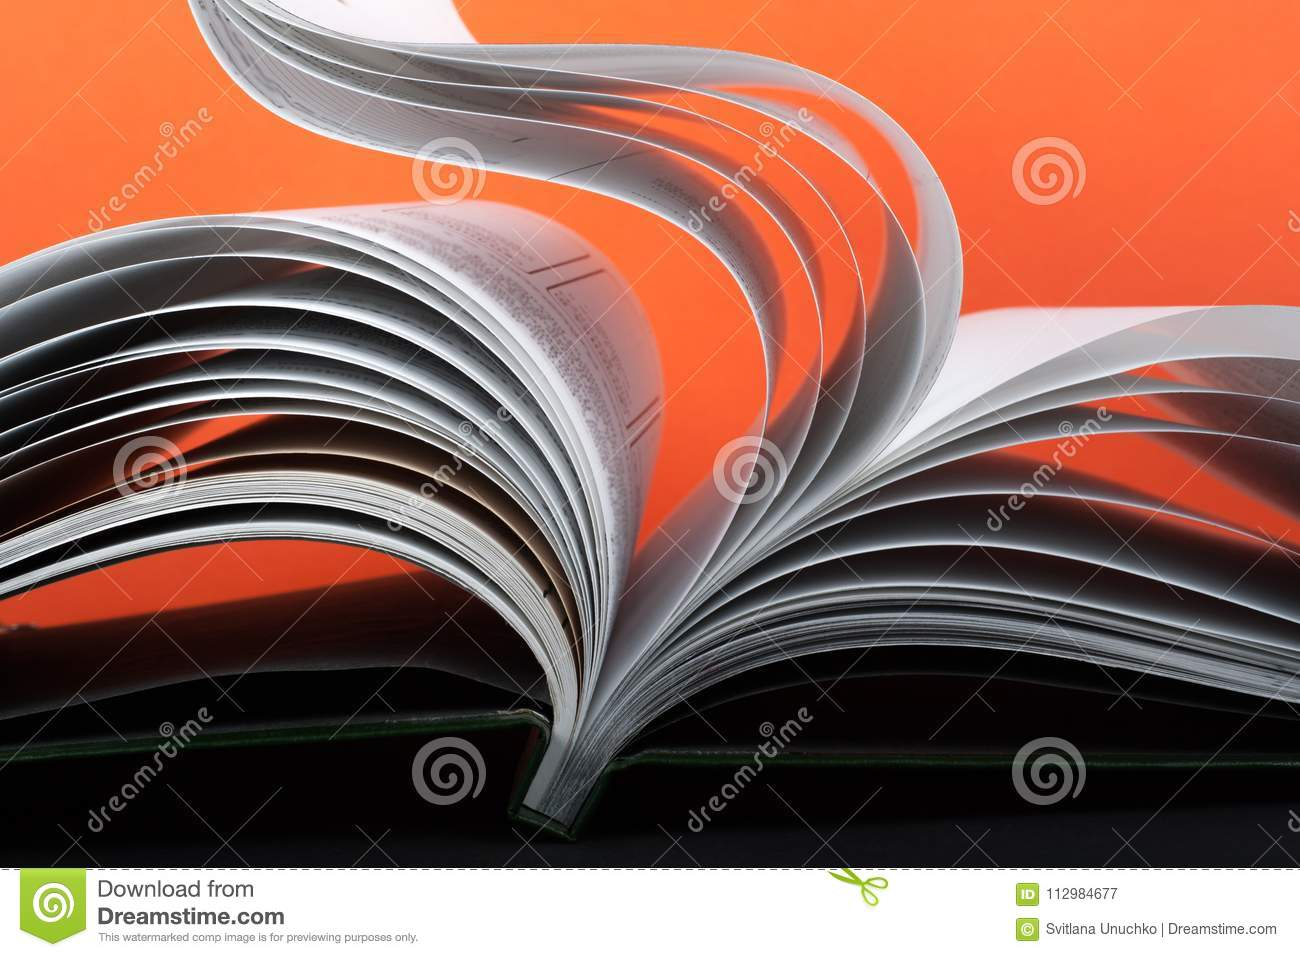 Macro view of book pages. Concept passion and fire.